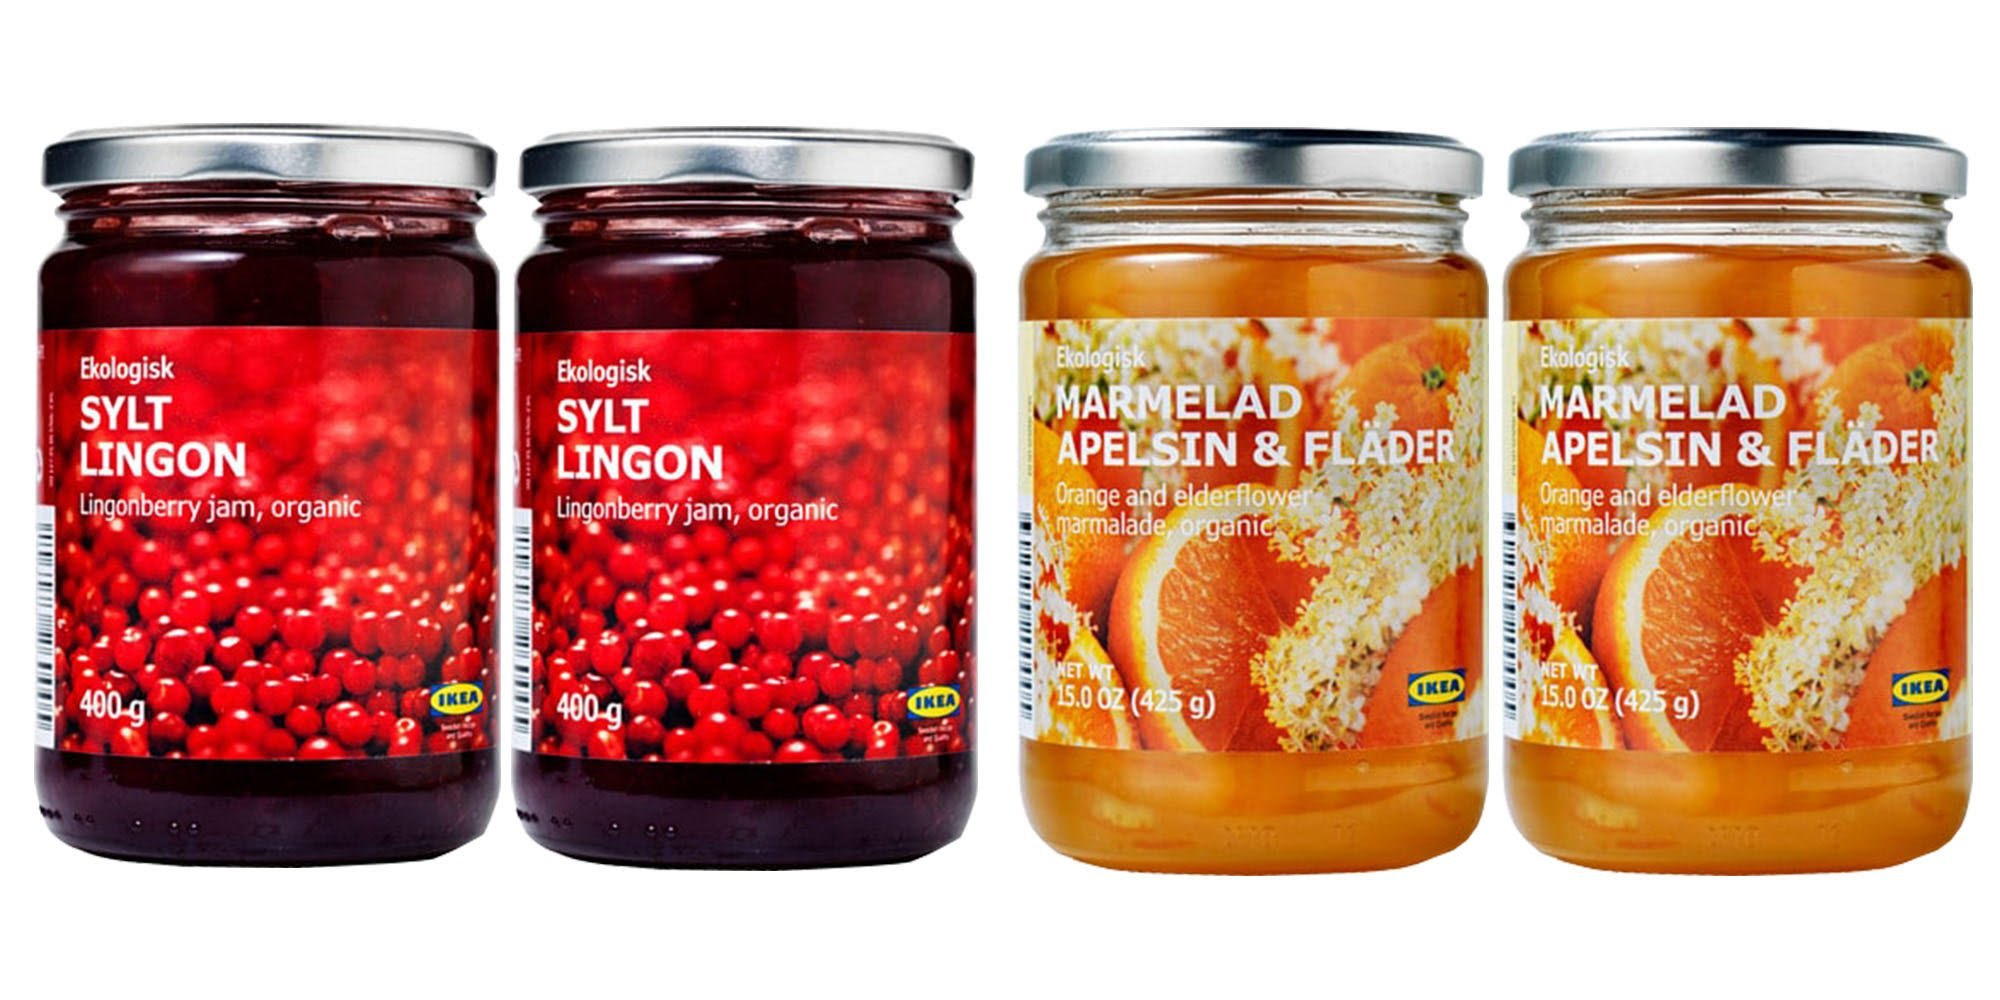 Ikea Organic Jam Bundle - Includes Total 4 Preserves - 2 SYLT LINGON Lingonberry Organic Preserves and and 2 MARMELAD APELSIN & FLÄDER Orange & elderflower organic Marmalade. by IKEA